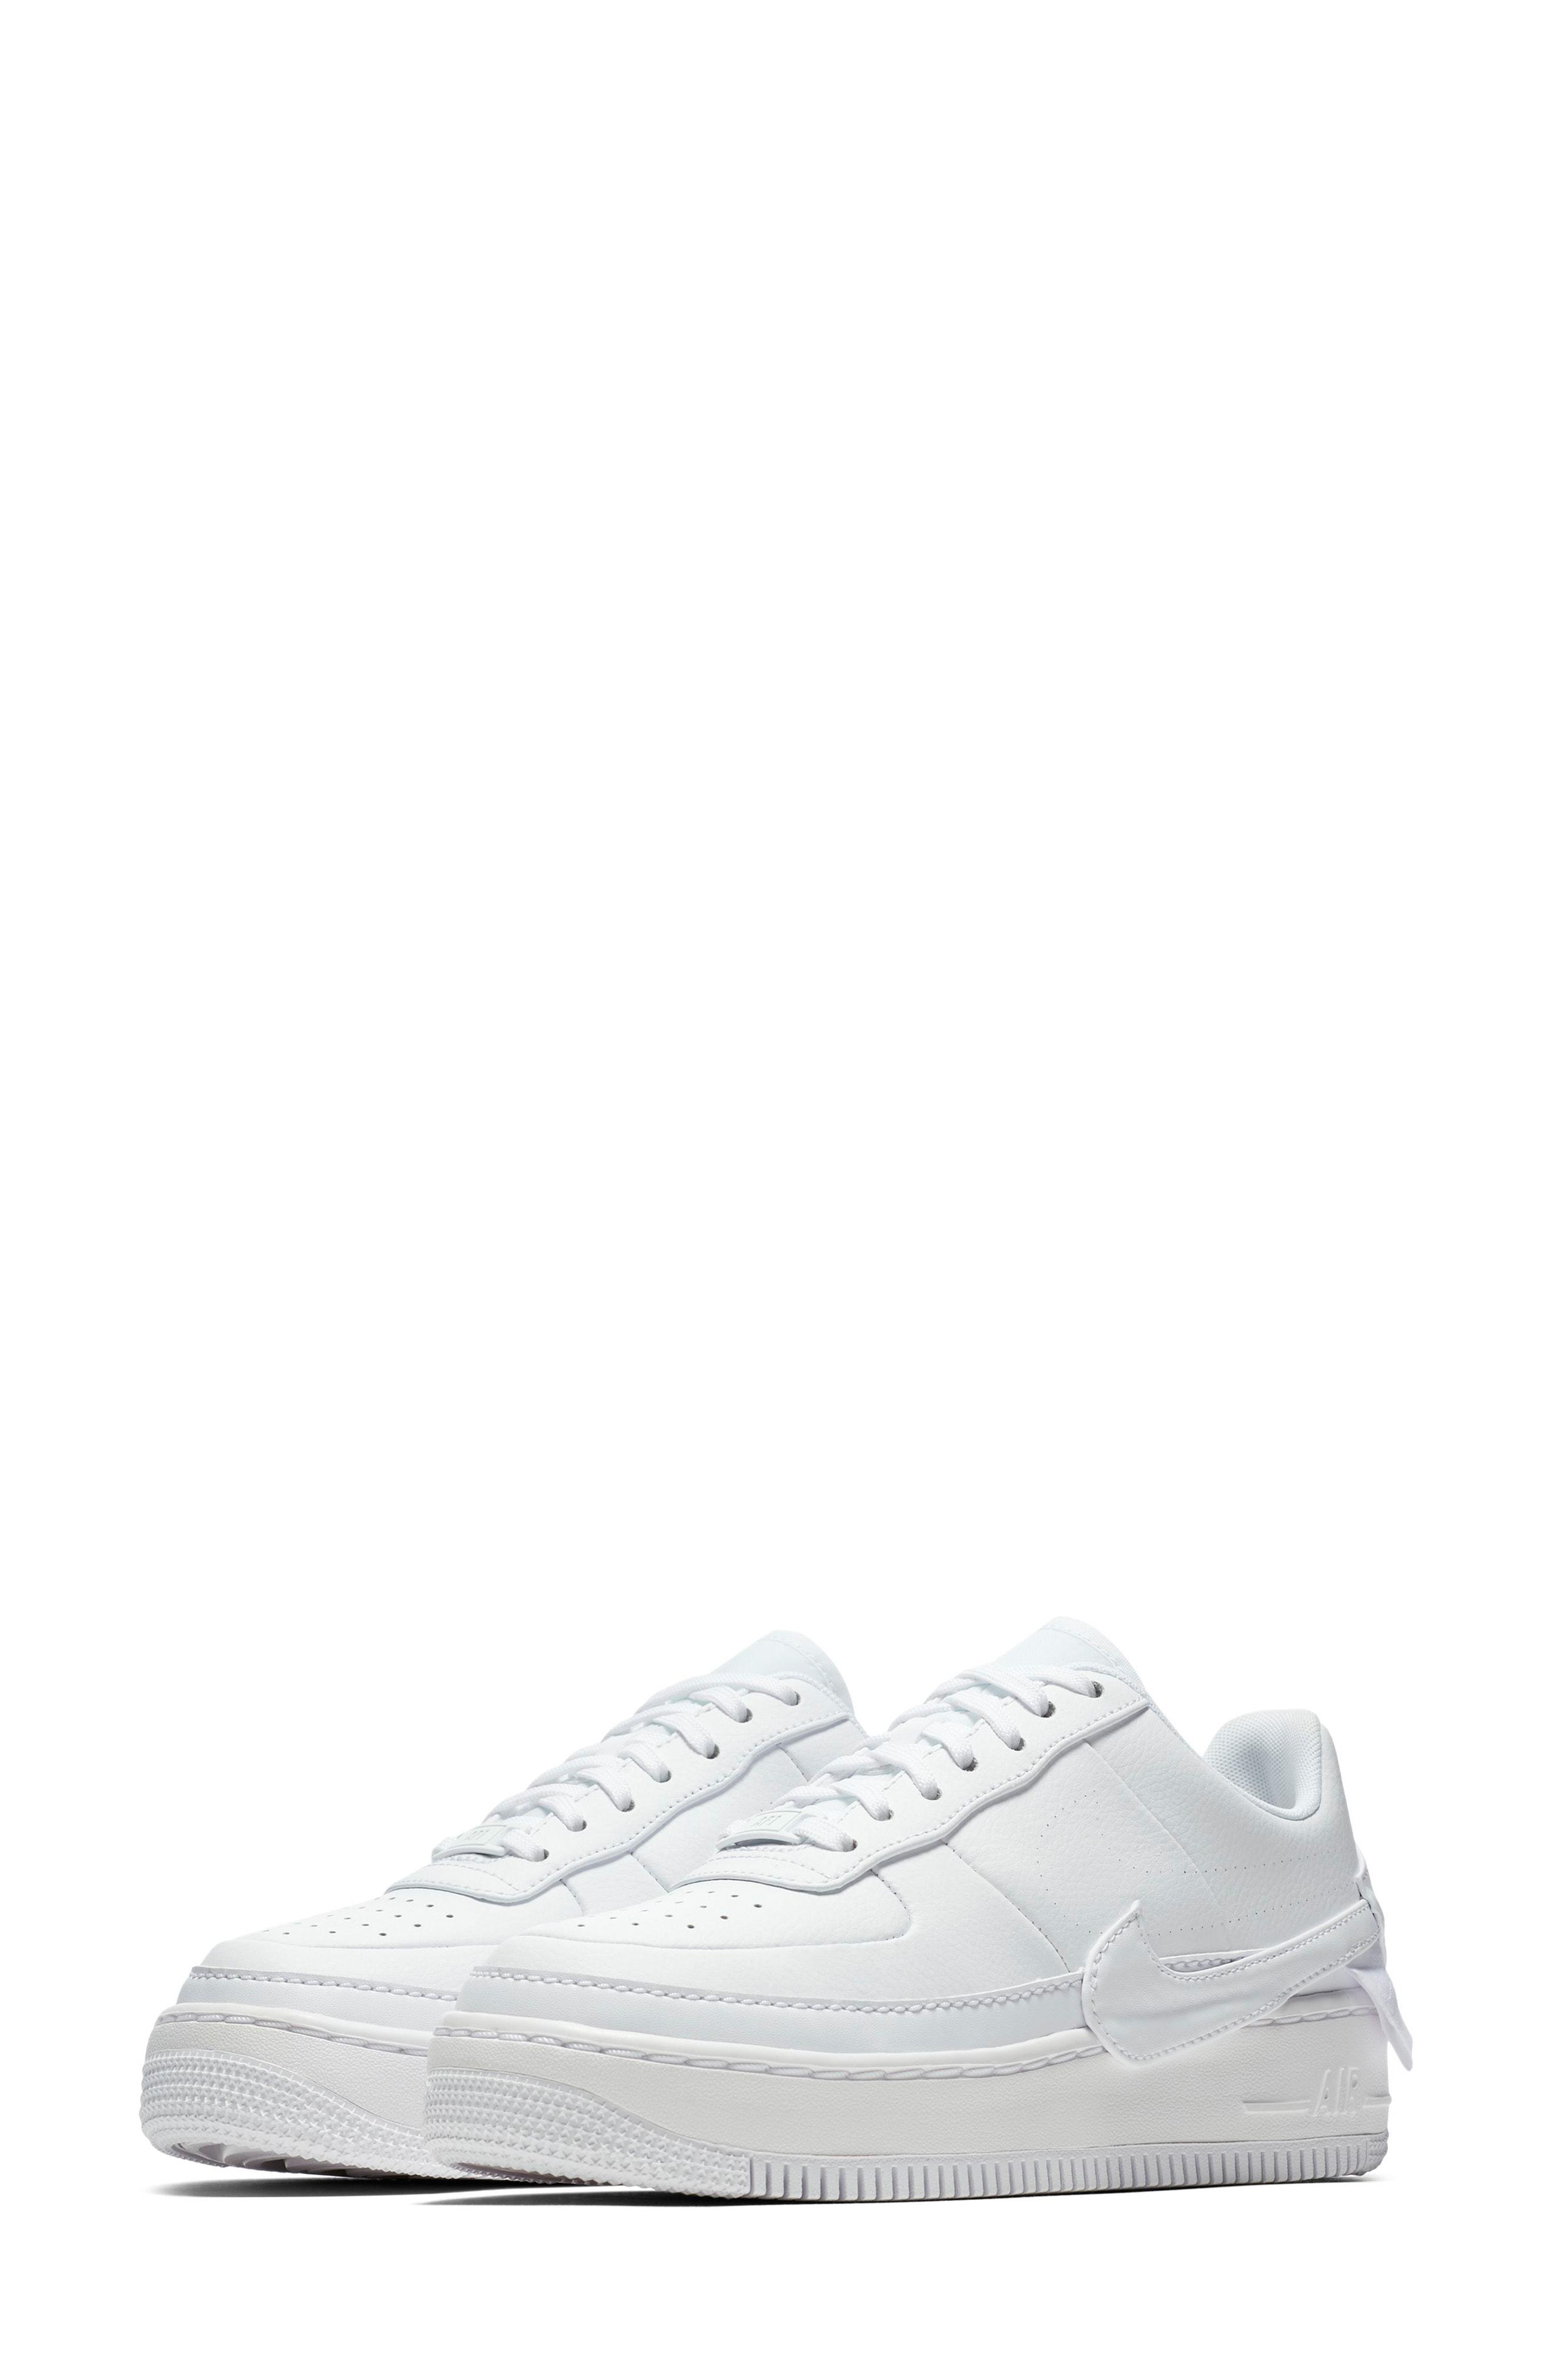 Lyst - Nike Air Force 1 Jester Xx Sneaker - Save 40% 7ba53bf9d